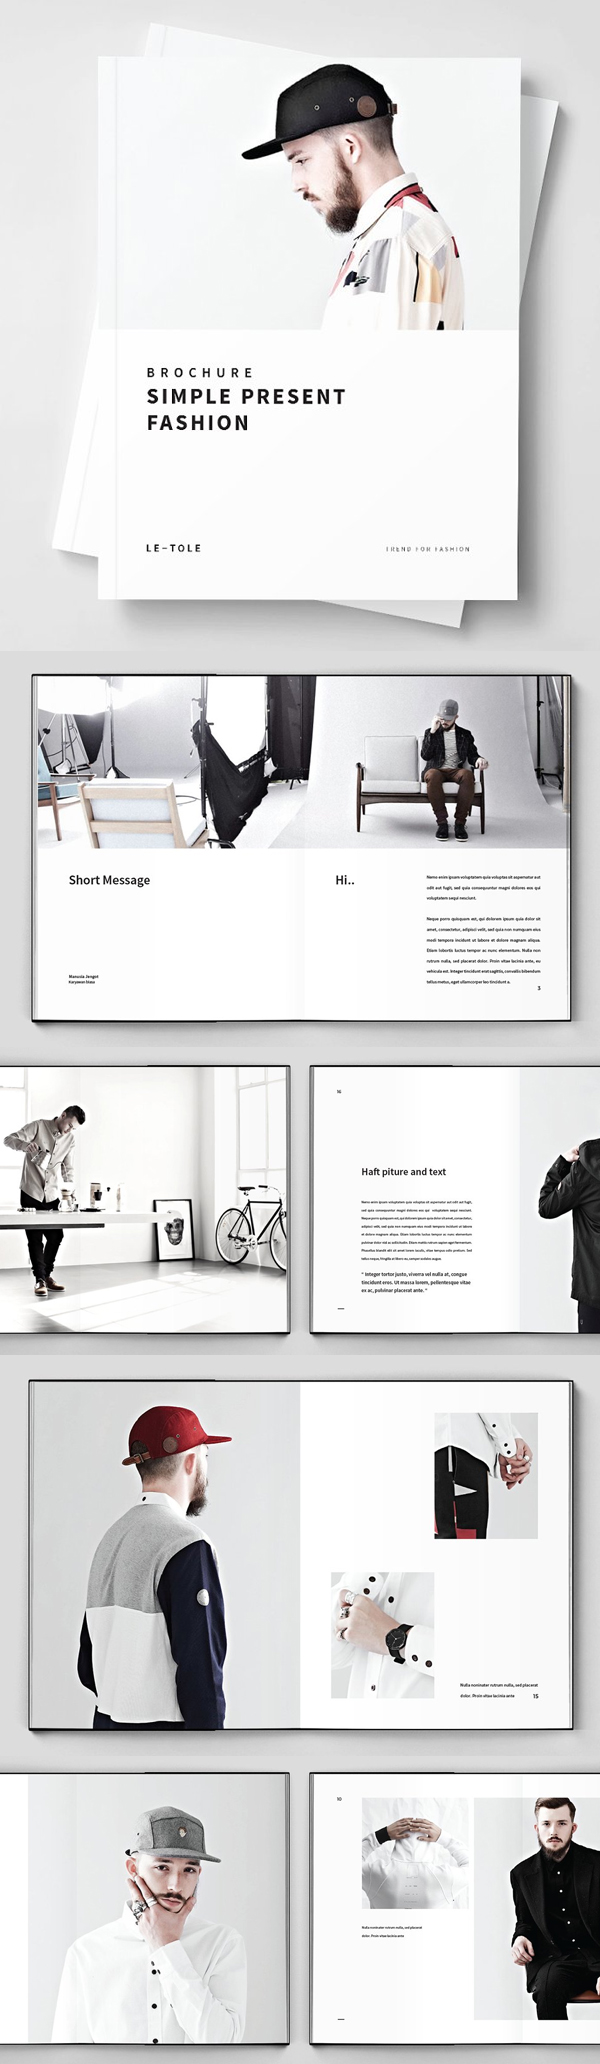 Best Fashion Brochure Template